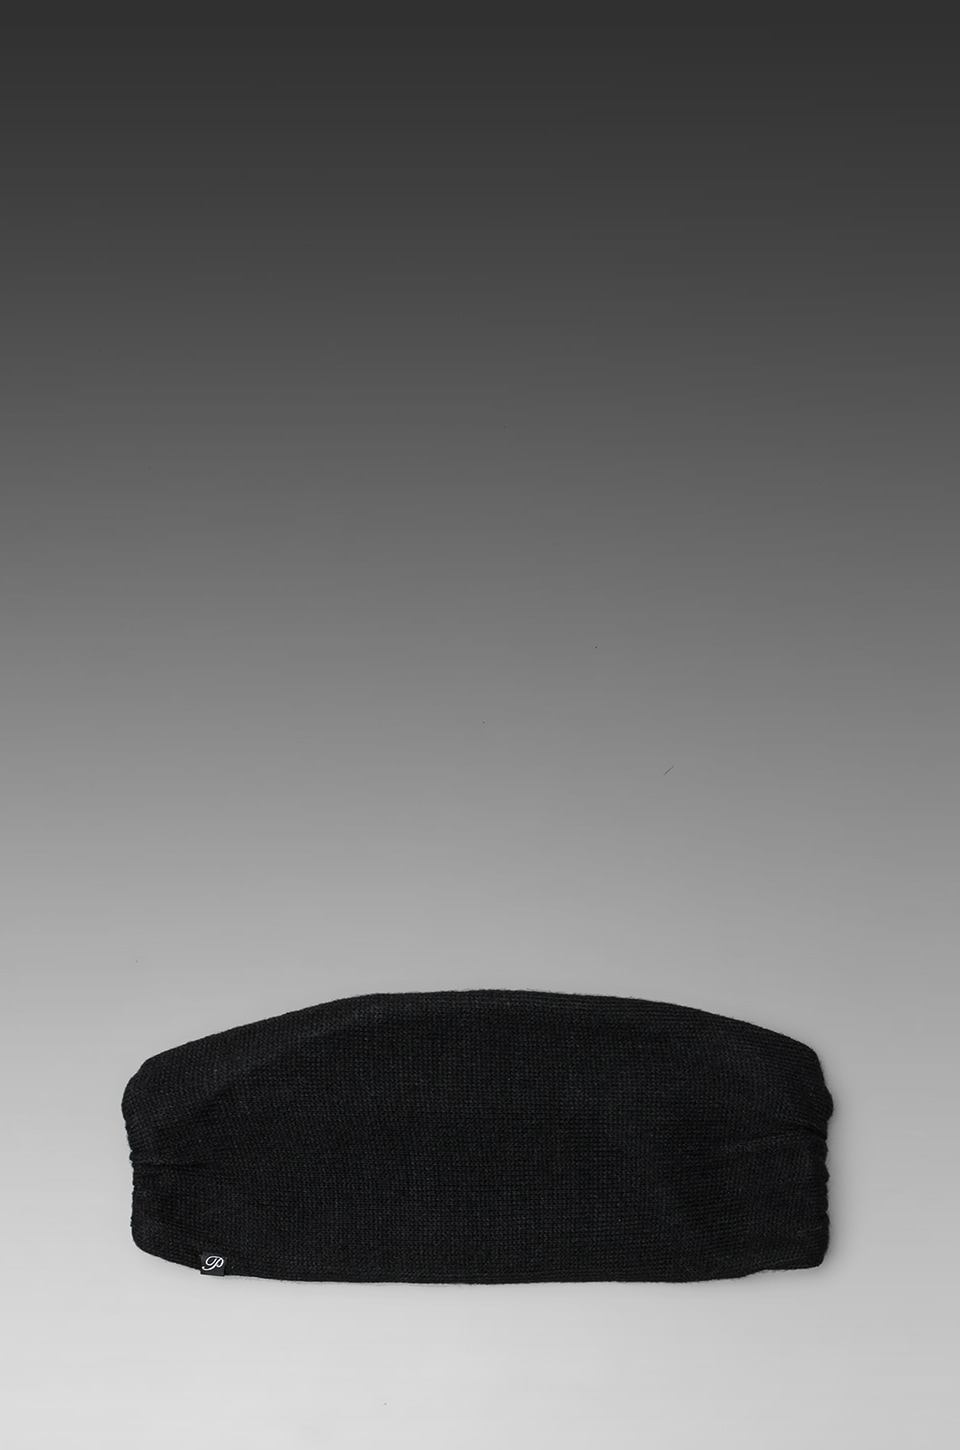 Plush Fleece Lined Knit Headband in Black